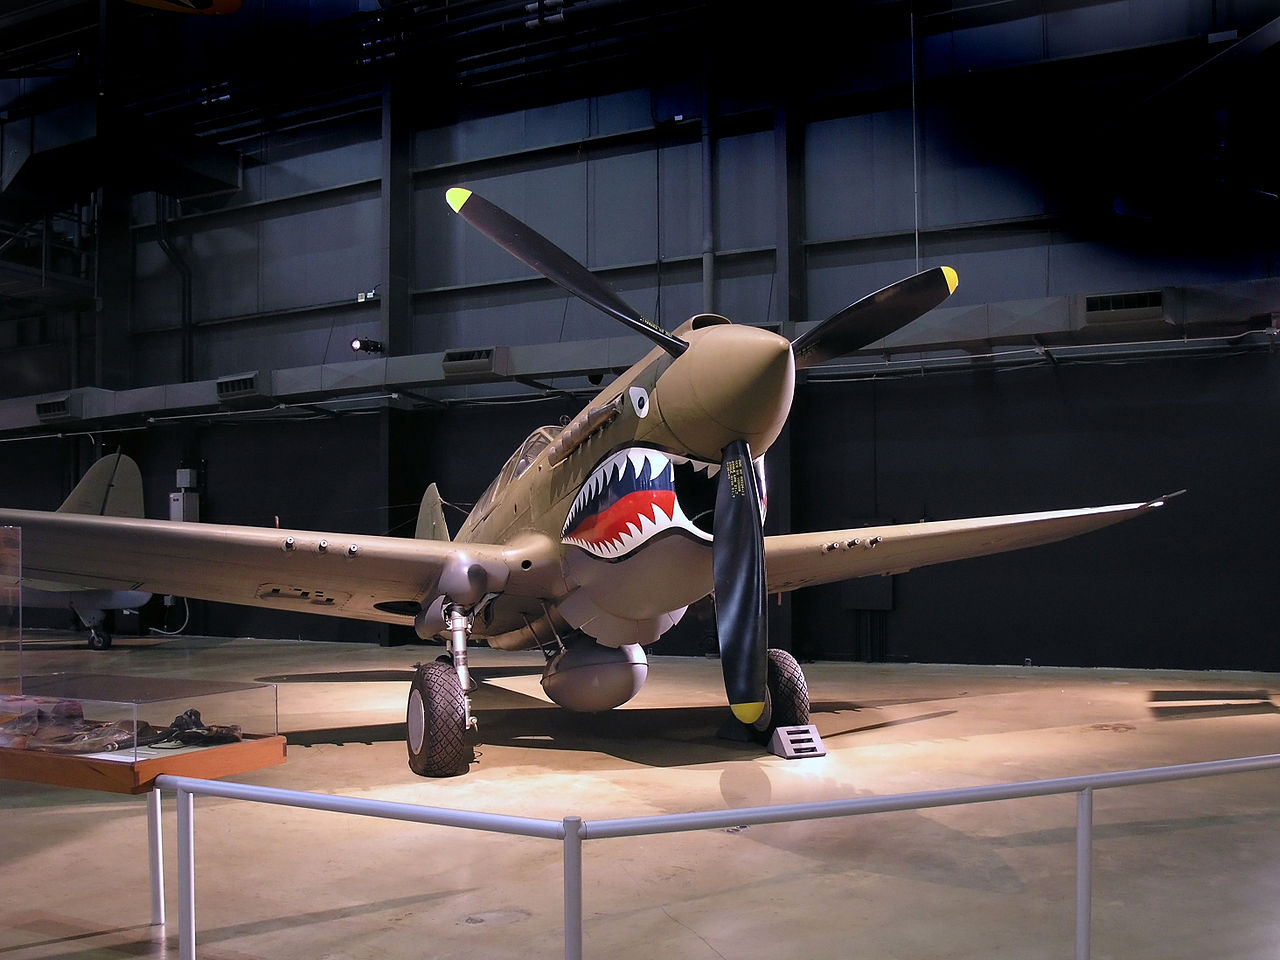 P40 War hawk painted with Flying Tigers shark face